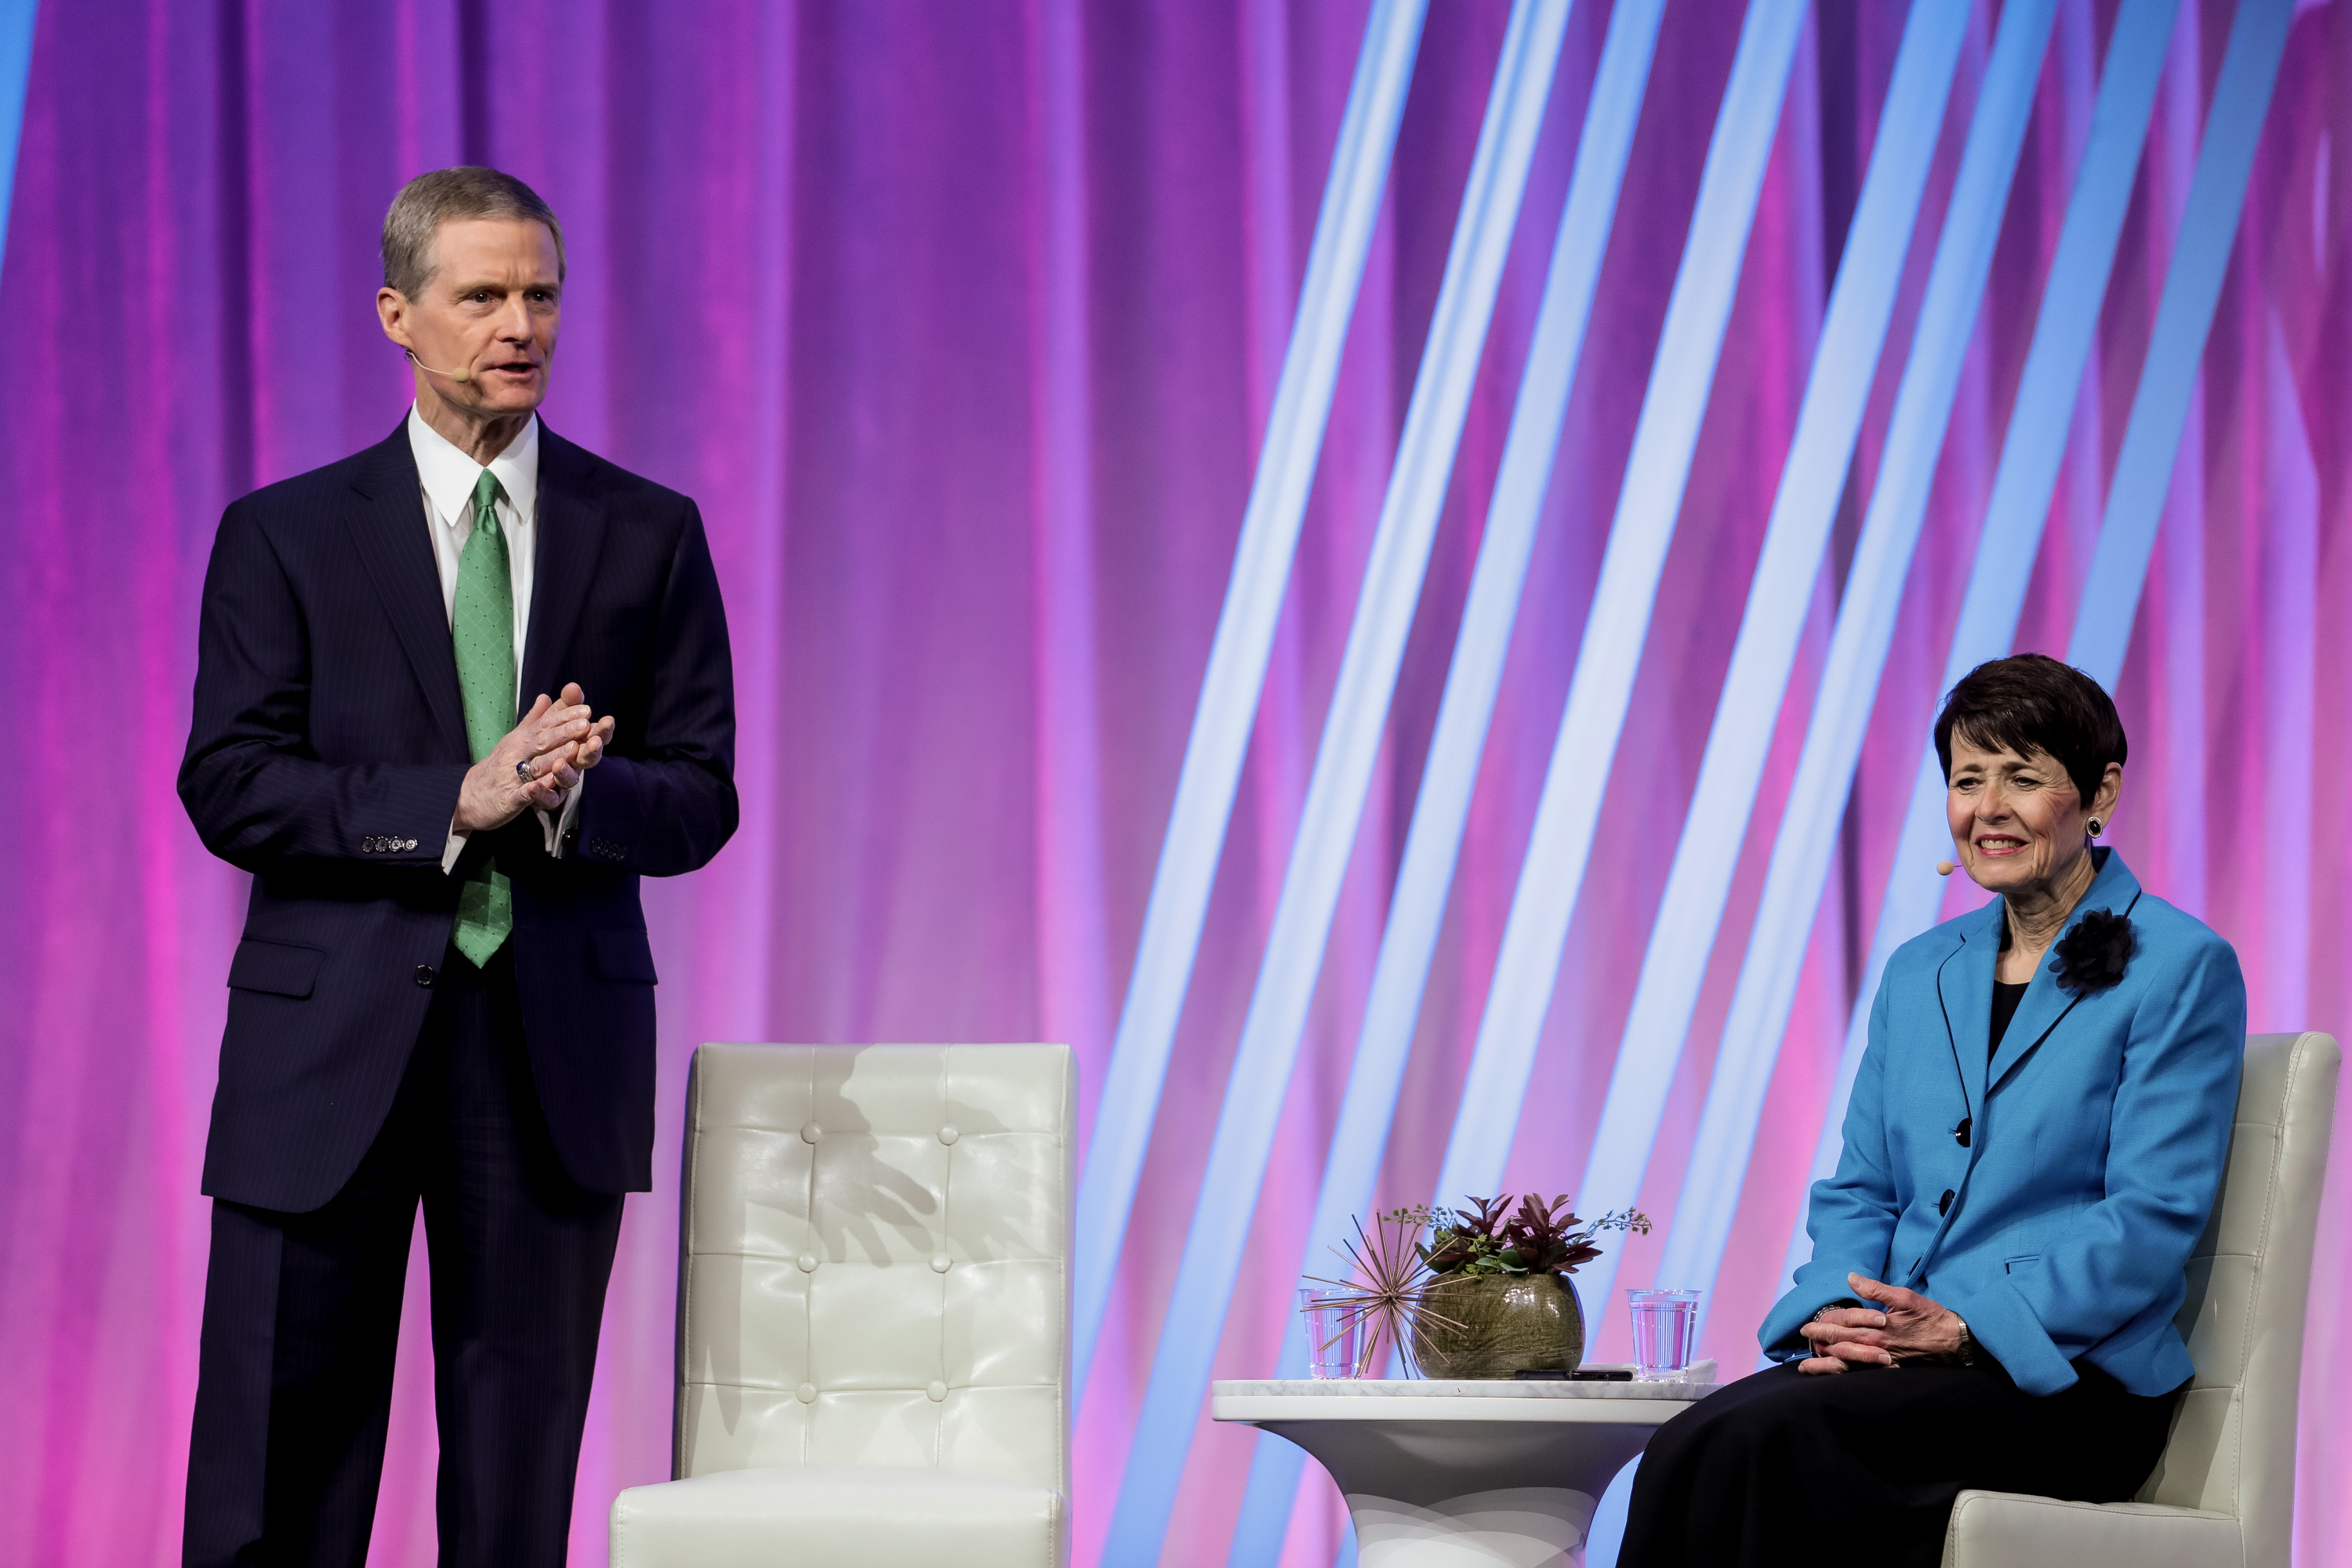 Elder David A. Bednar of the Quorum of the Twelve Apostles and his wife, Sister Susan Bednar, speak during the RootsTech conference at the Salt Palace in Salt Lake City on Saturday, March 2, 2019.